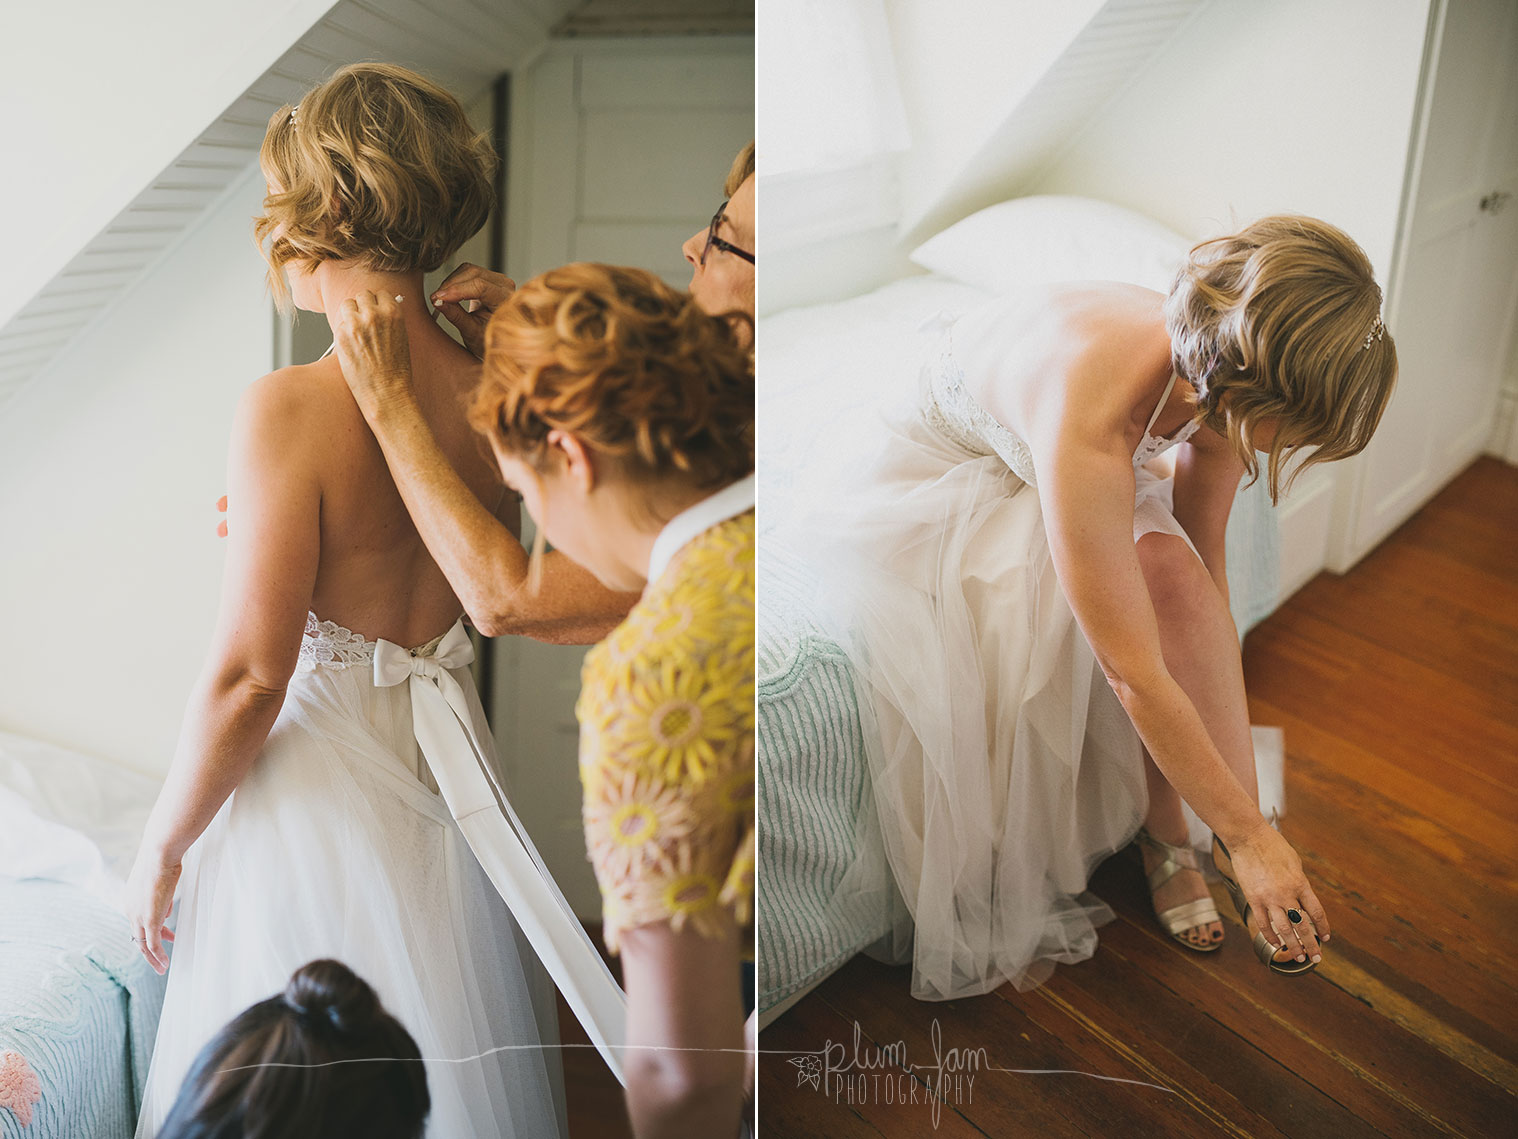 AshleyTylerWedding-Blog-003-PlumJamPhotography